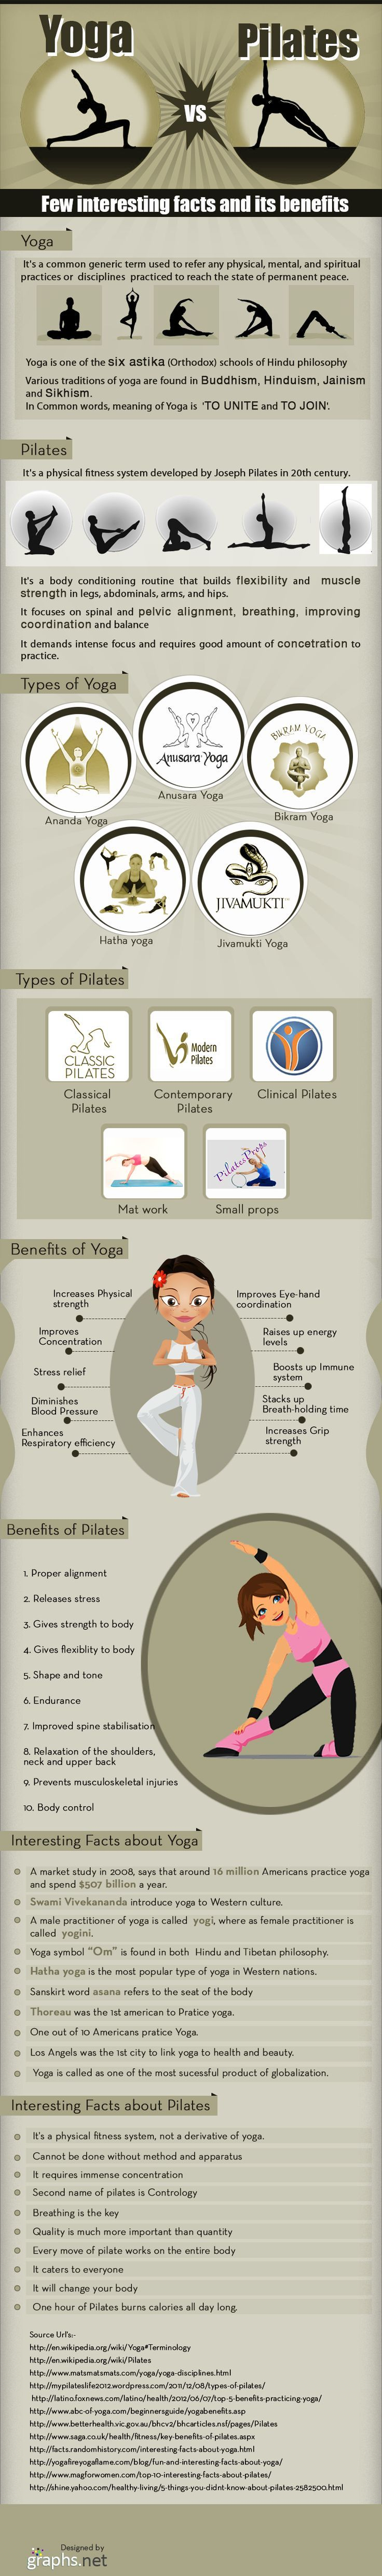 yoga vs pilates  | Come to Clarkston Hot Yoga in Clarkston, MI for all of your Yoga and fitness needs!  Feel free to call (248) 620-7101 or visit our website www.clarkstonhotyoga.com for more information about the classes we offer!